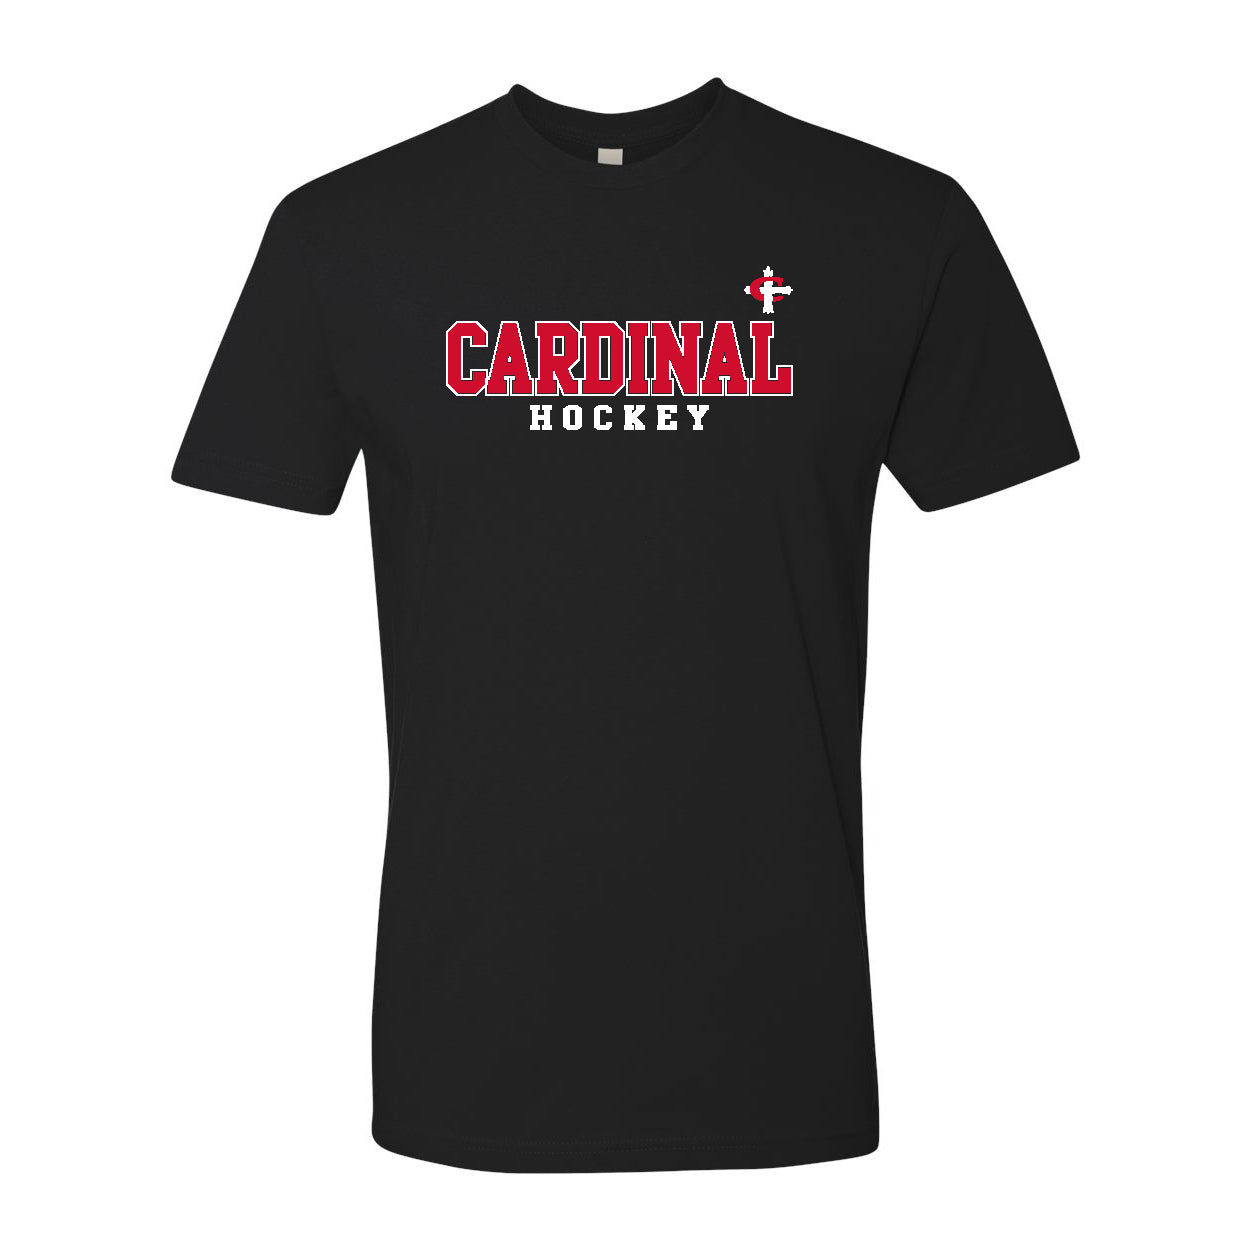 Cardinal Cross Hockey T-Shirt - Black